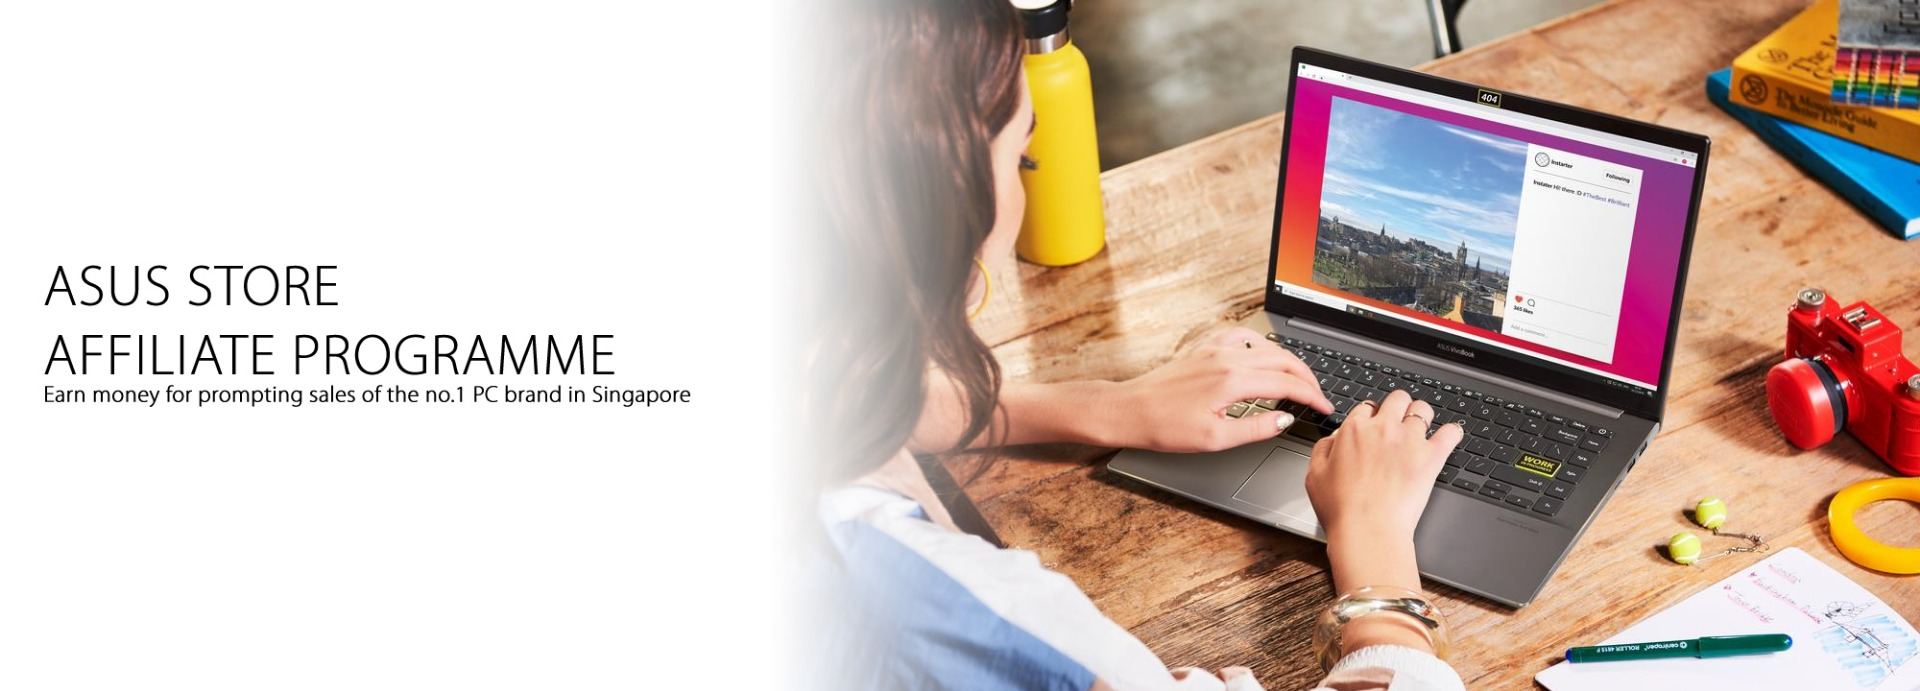 ASUS Store Affiliate Programme - Earn money for prompting sales of the no.1 PC brand in Singapore